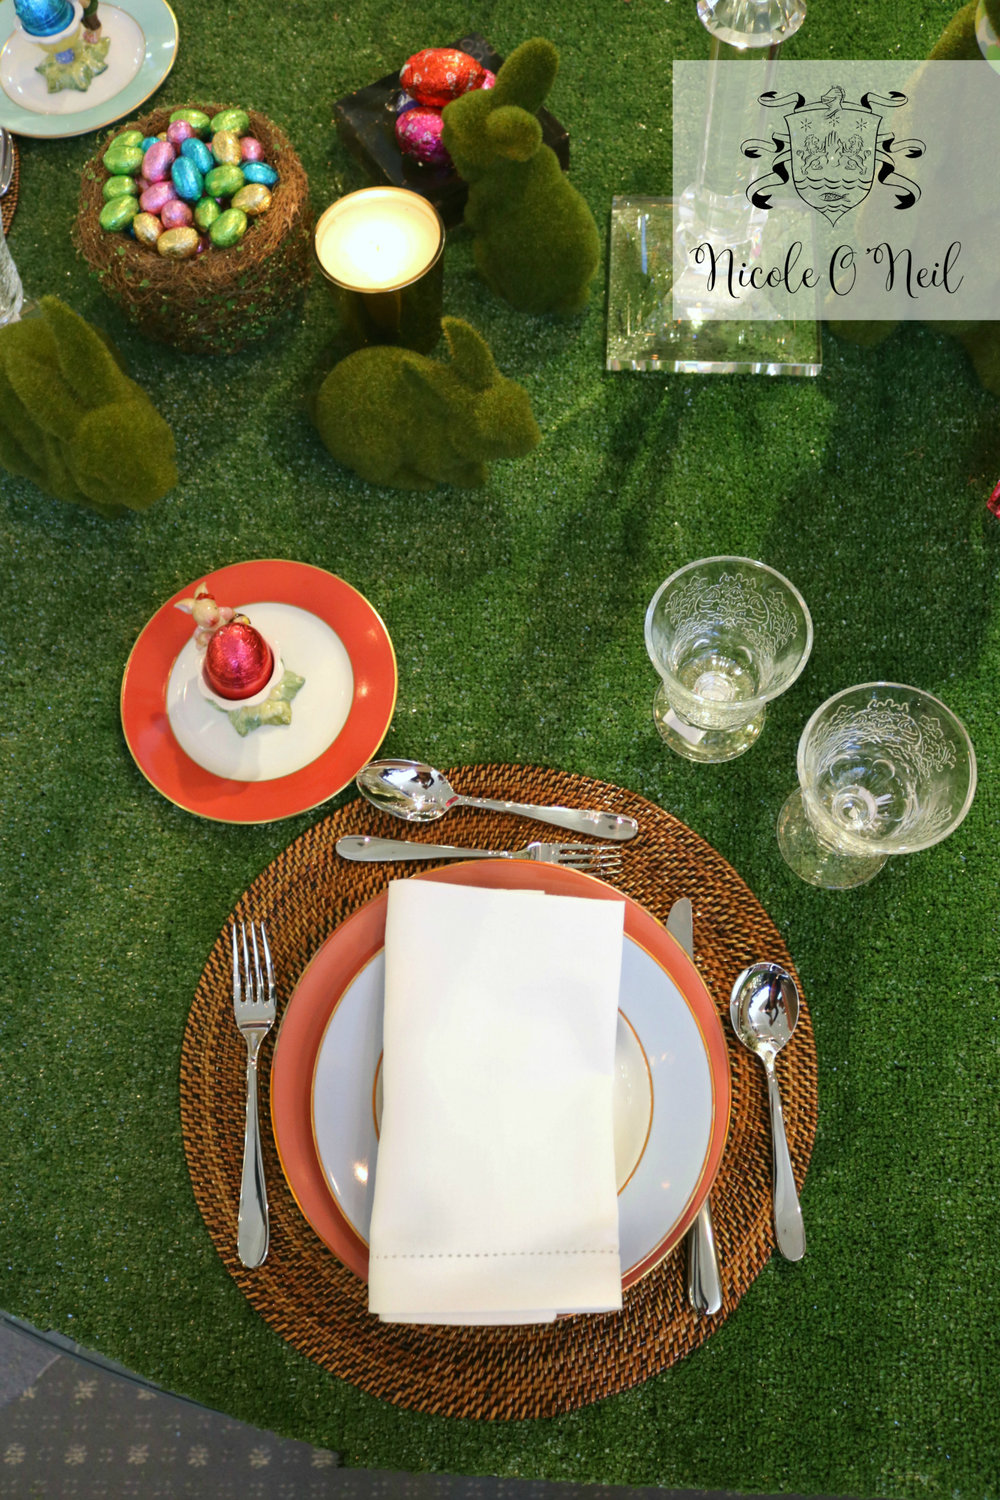 Easter Table Setting Ideas - How to Decorate An Easter Table